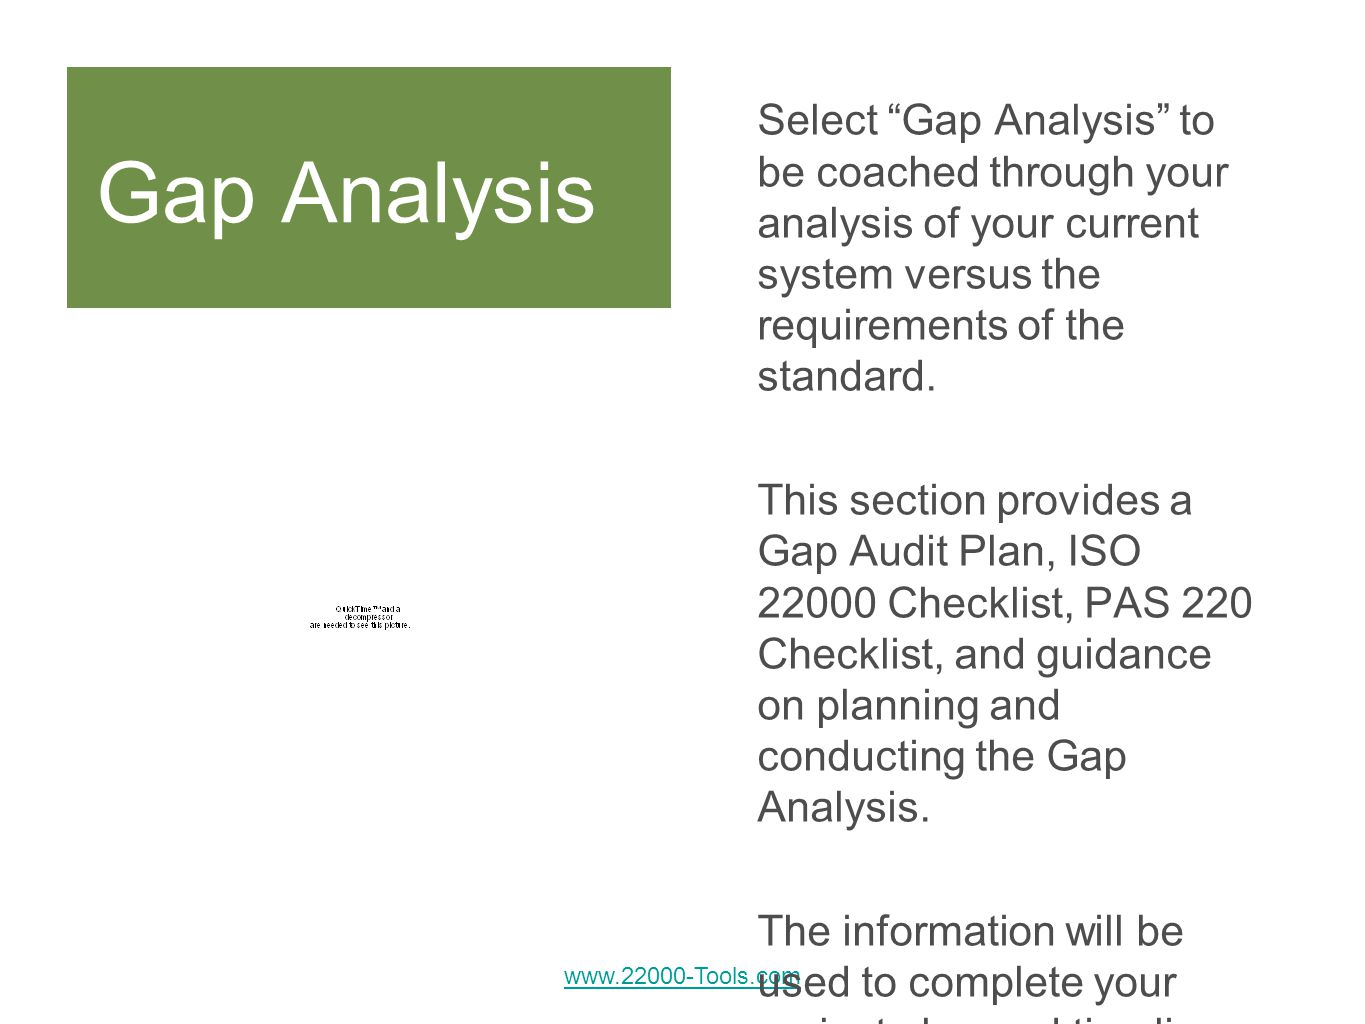 Gap Analysis Select Gap Analysis to be coached through your analysis of your current system versus the requirements of the standard.